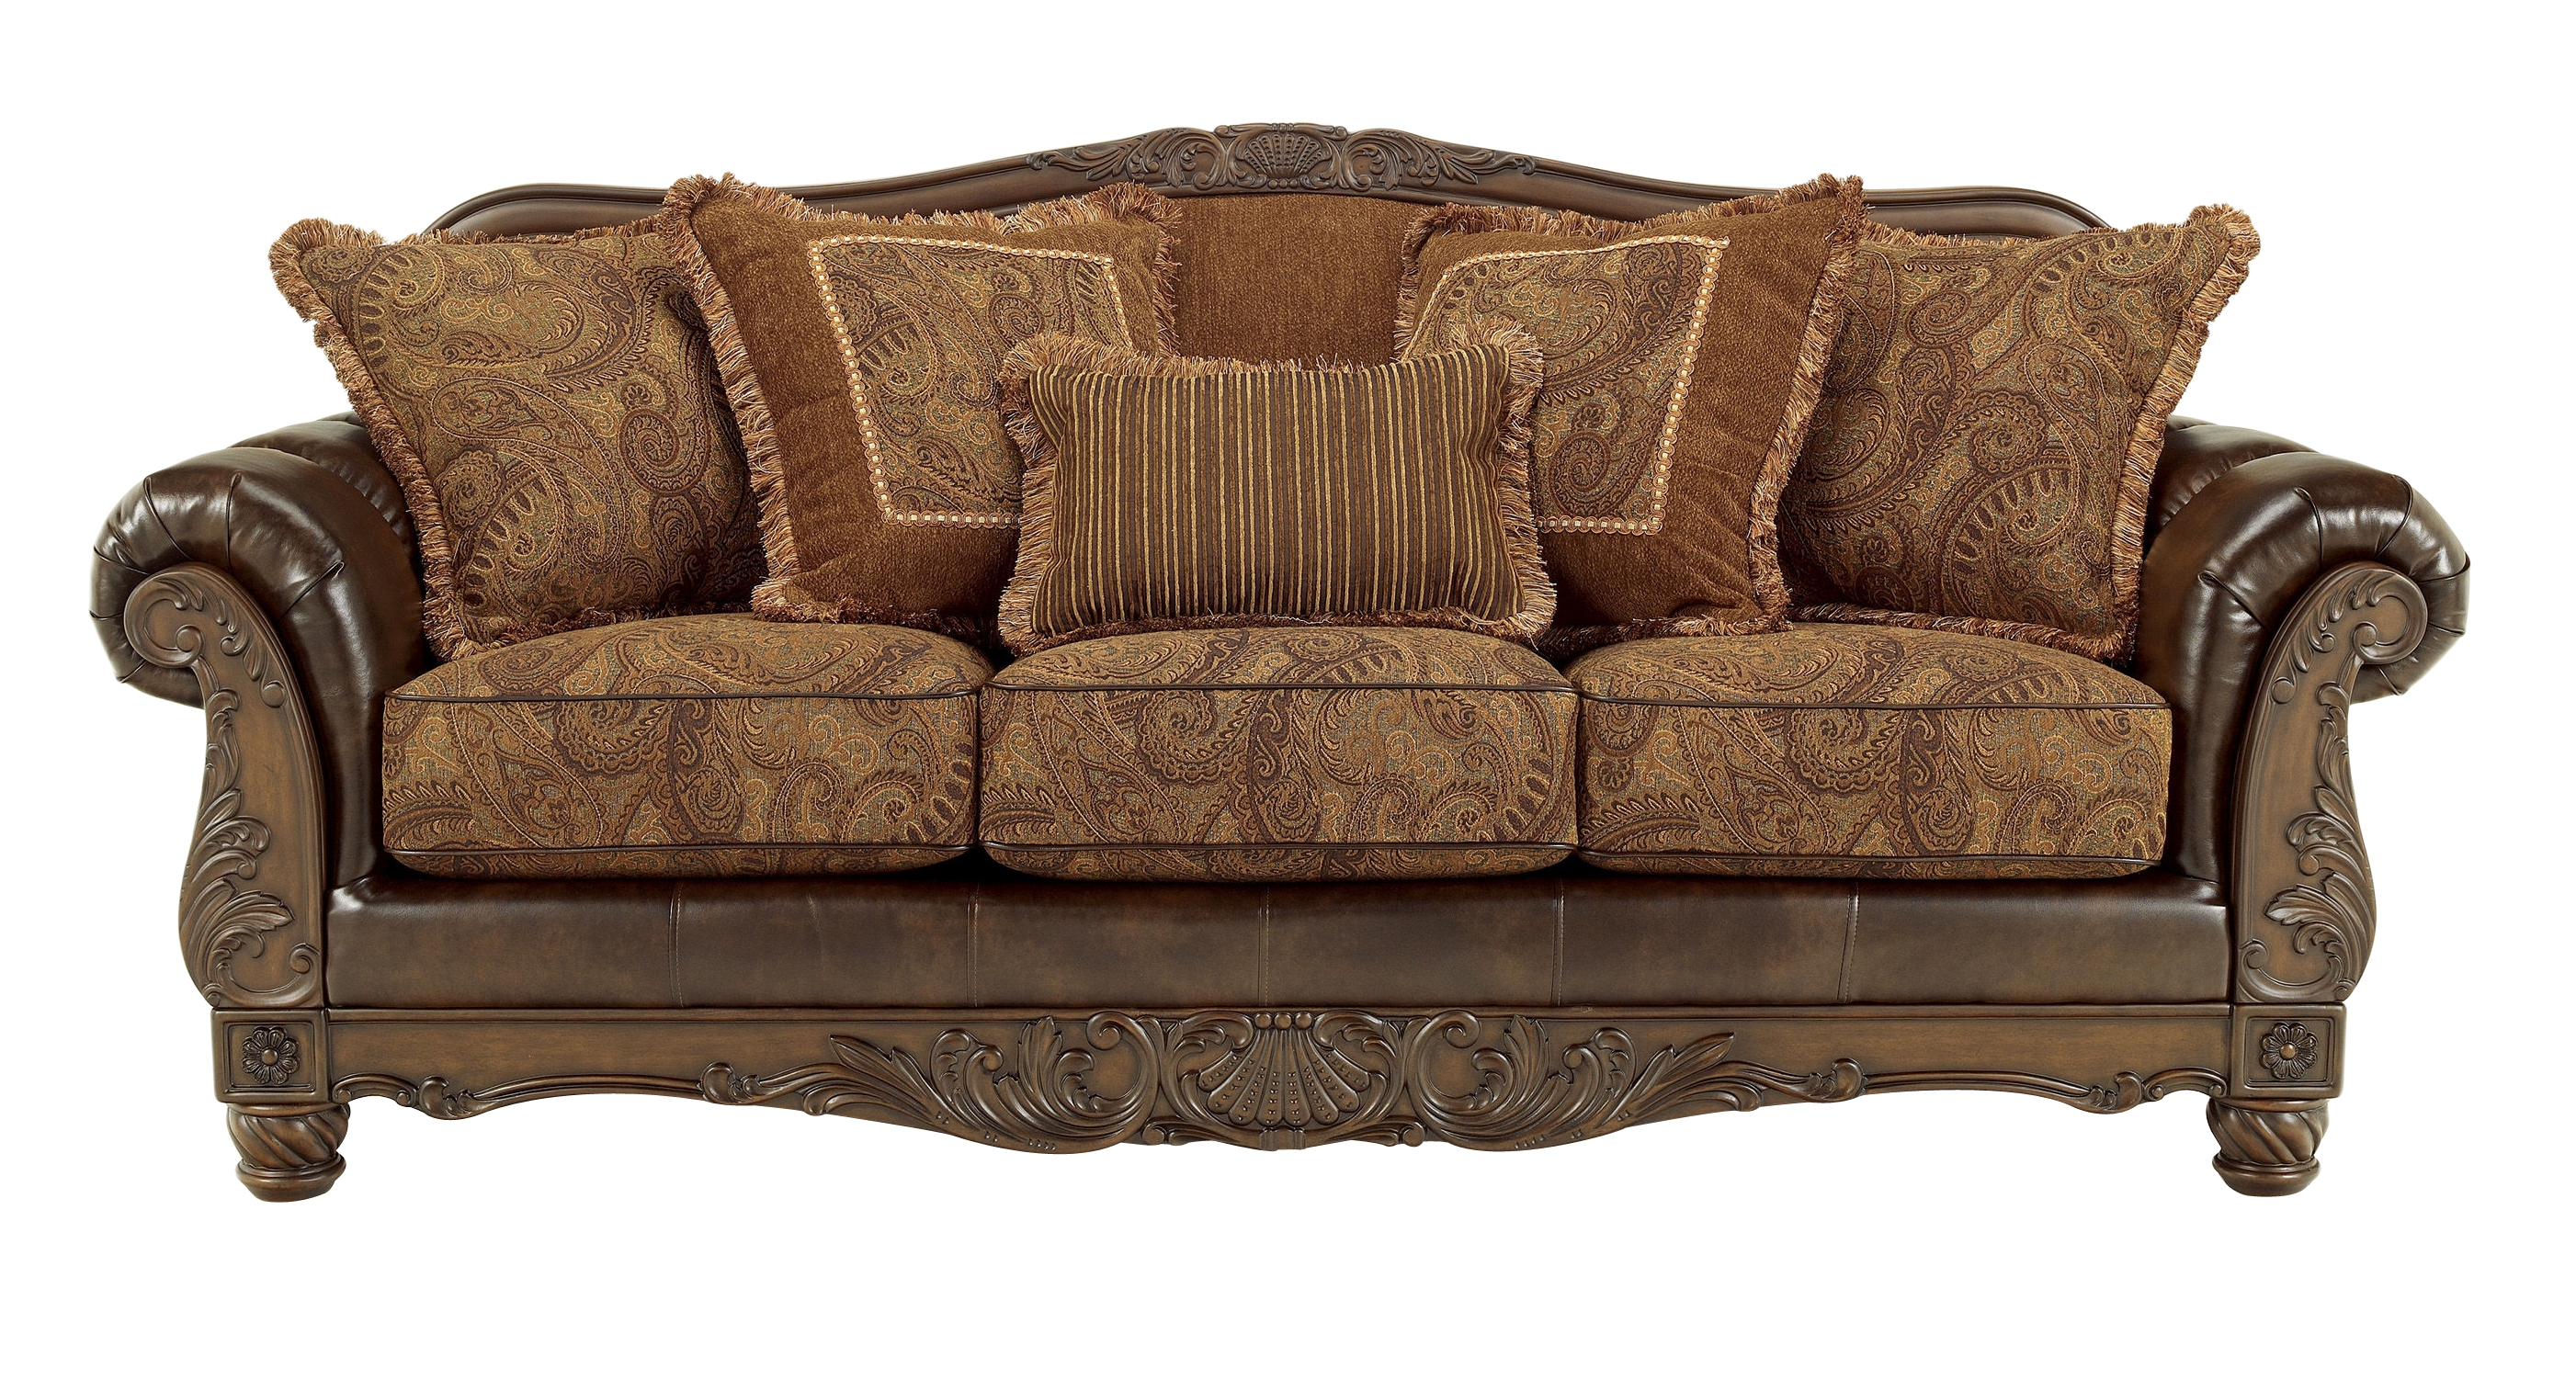 Fresco DuraBlend Traditional Antique Fabric Sofa